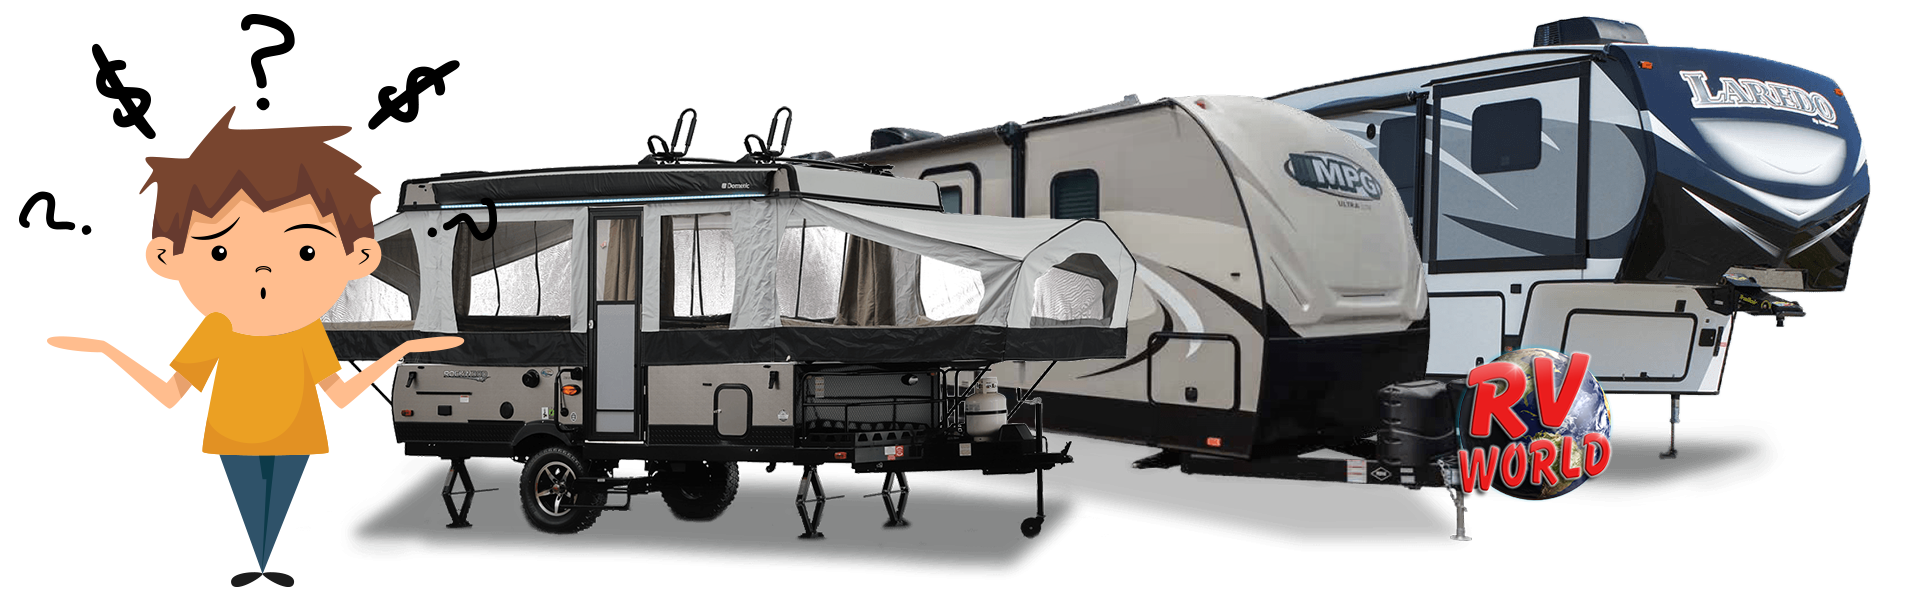 Why are your RV prices not listed on your website?